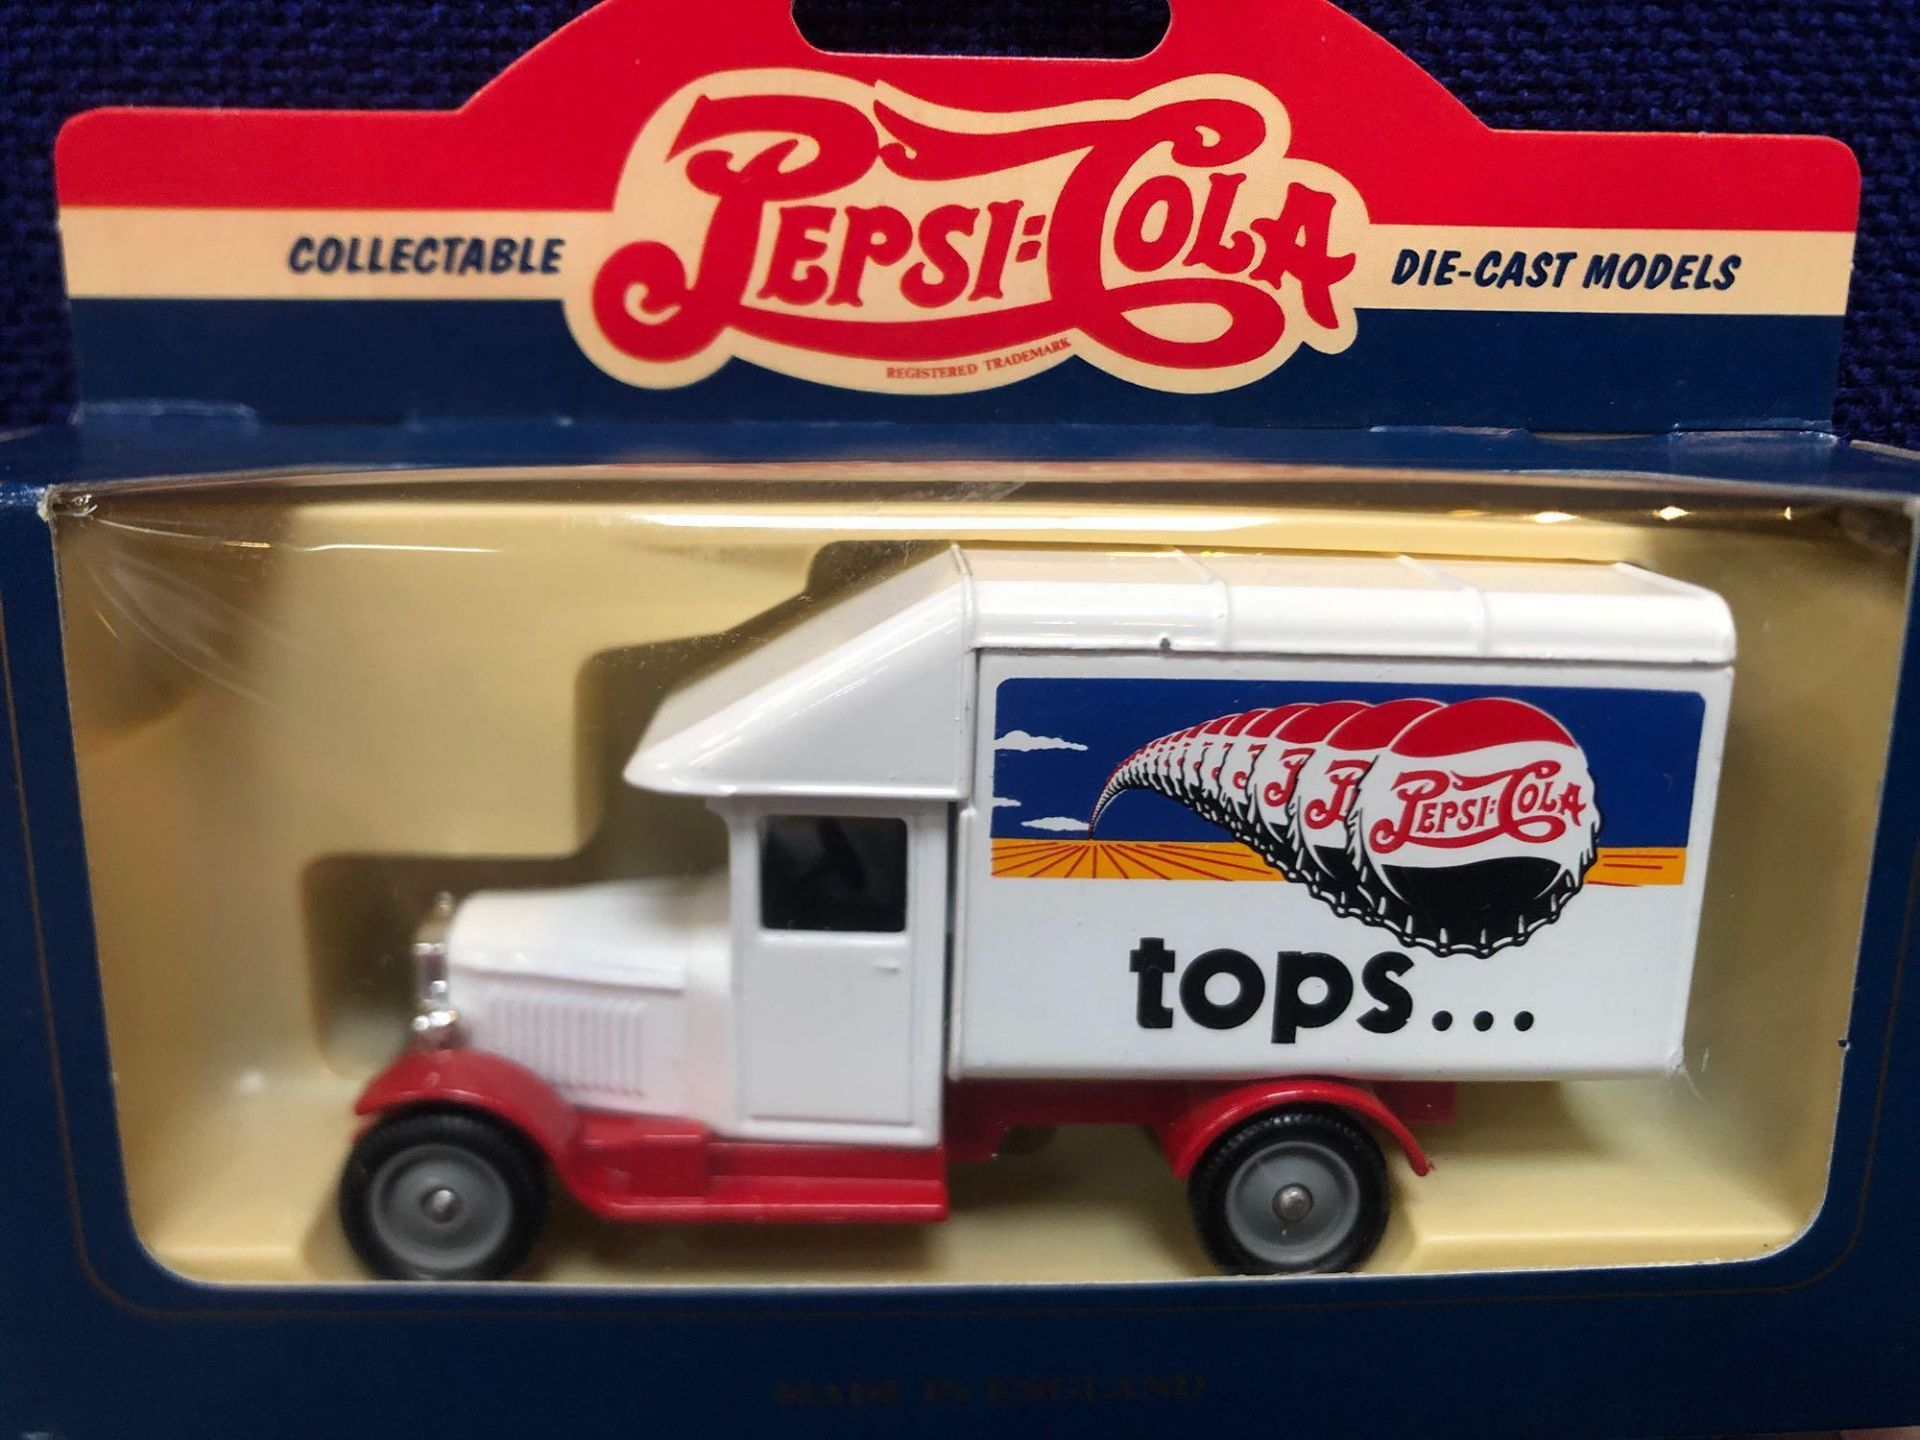 5x Lledo Diecast Pepsi Cola Advertising Vehicles Each One Boxed. - Image 4 of 4